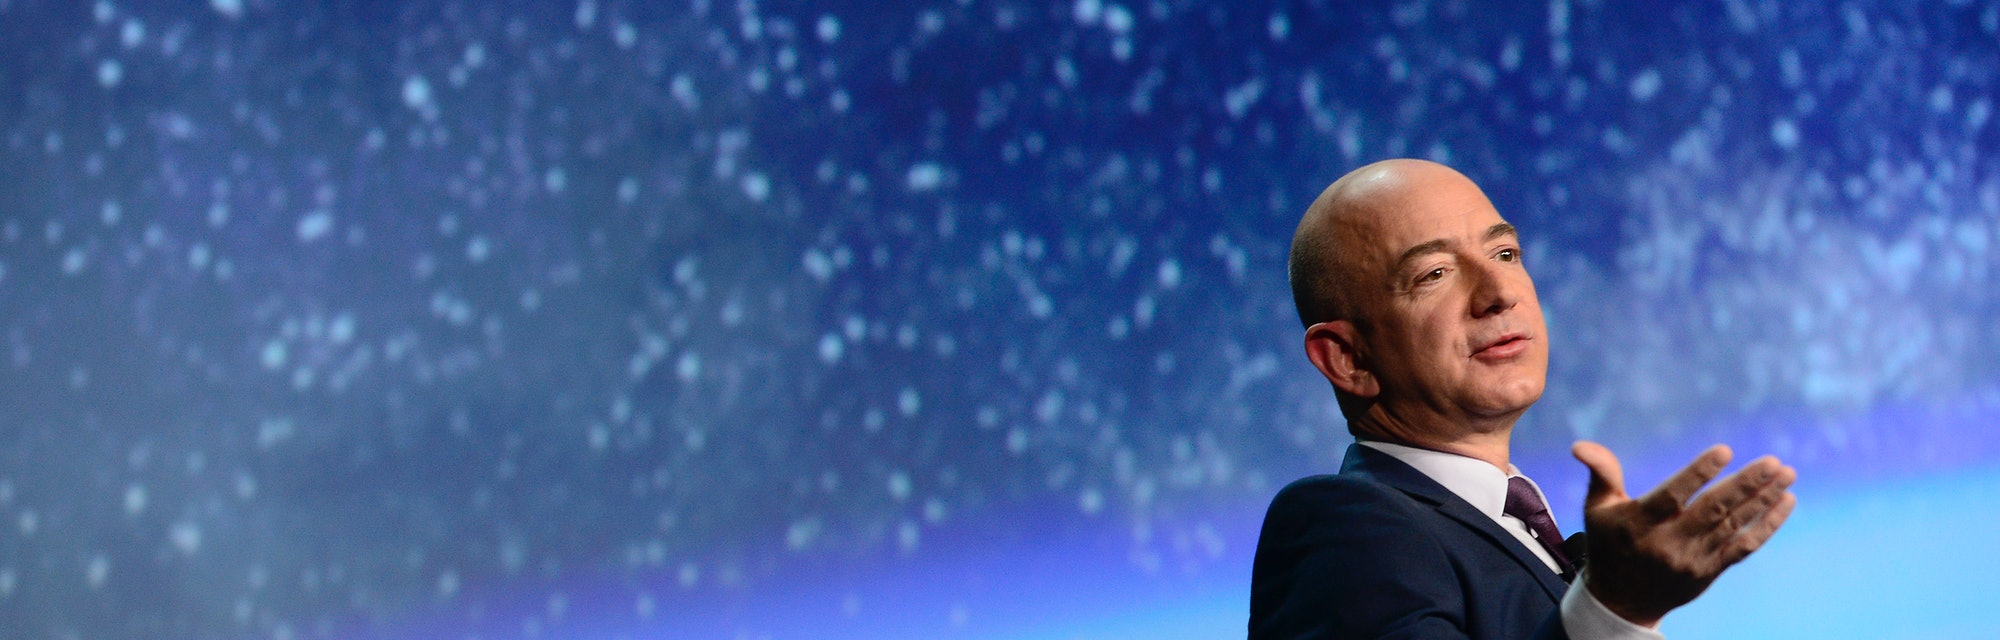 COLORADO SPRINGS, CO - APRIL 12: Founder of space company Blue Origin, Jeff Bezos, speaks about the ...